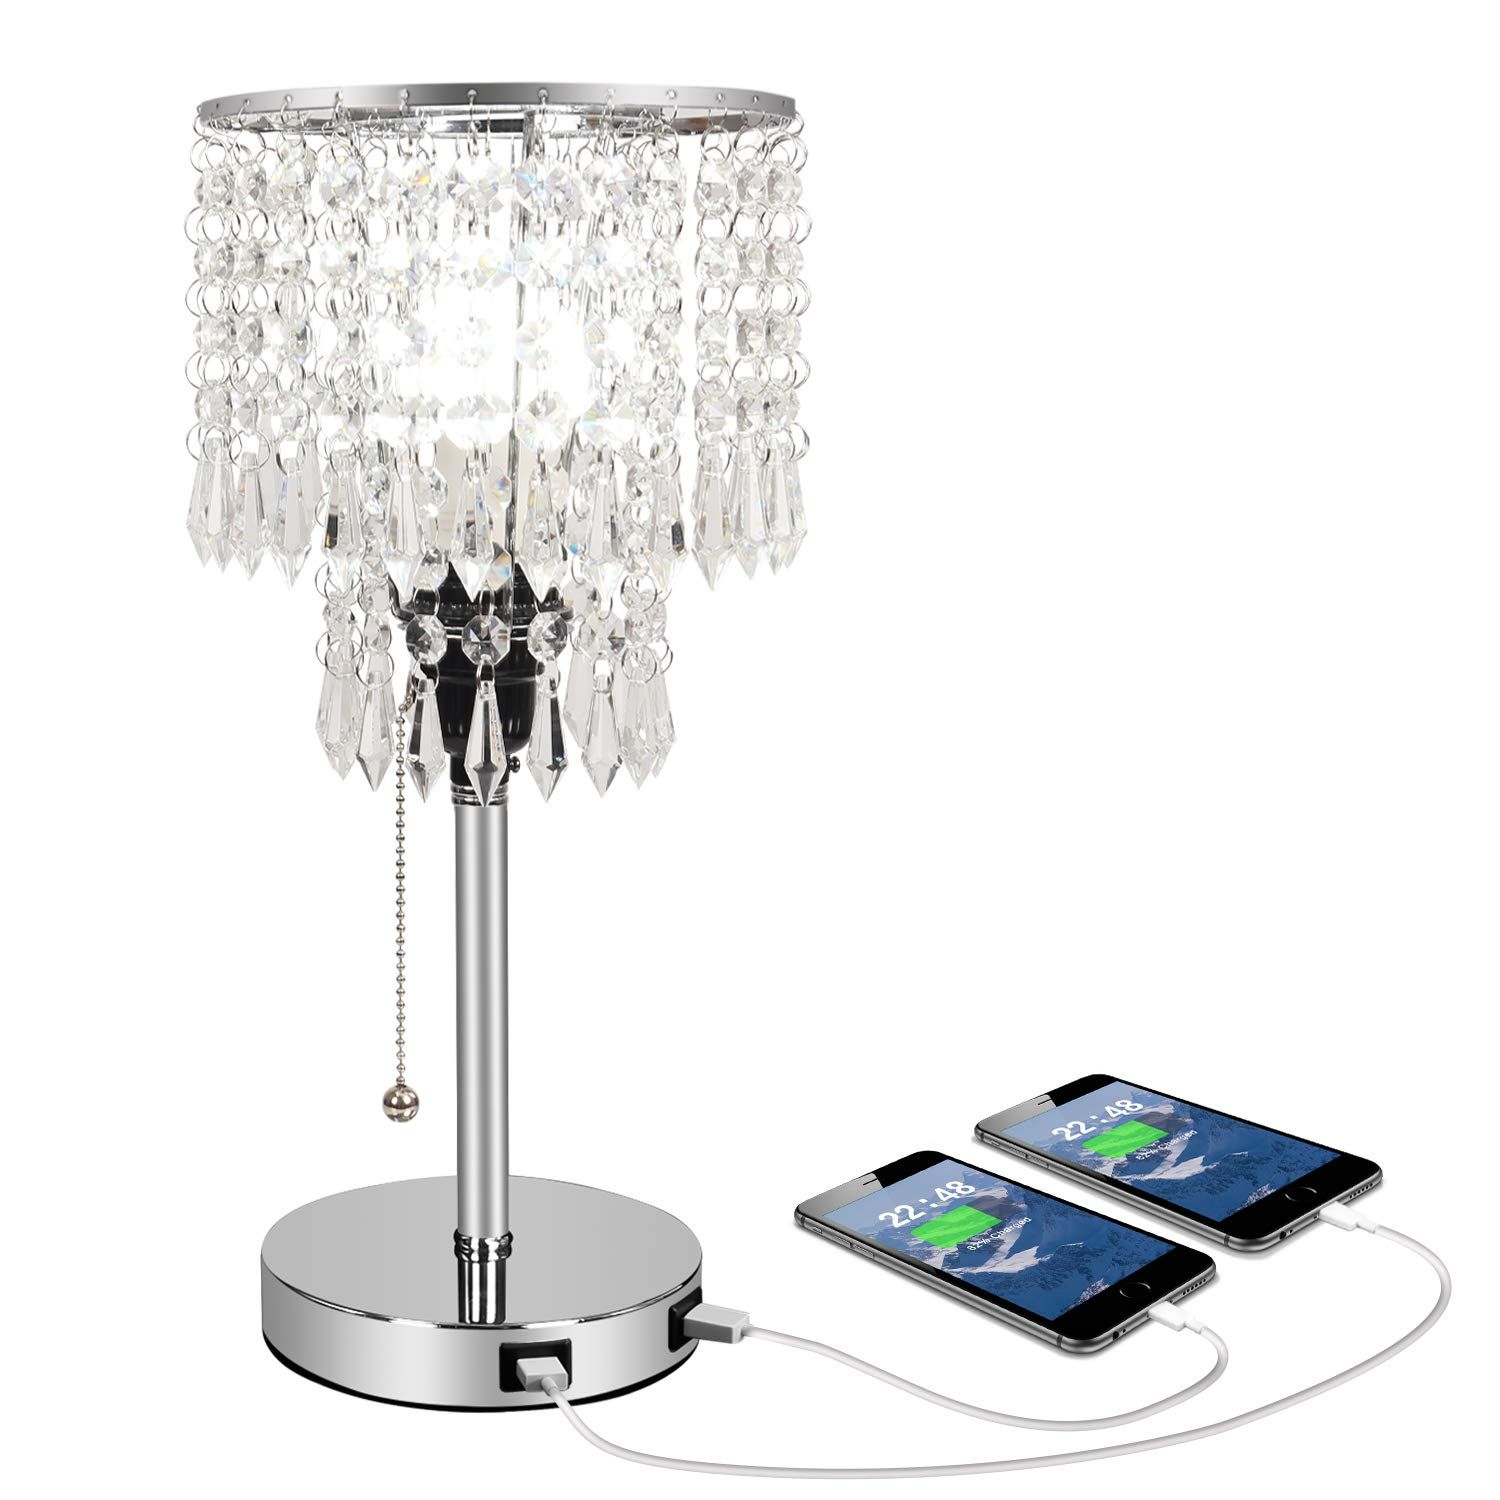 Silver Crystal Bedside Table Desk Lamp With Dual Usb Charging Port Acaxin Bedroom Lamps For Nightstand Bli In 2020 Bedroom Lamps Crystal Table Lamps Glass Table Lamp